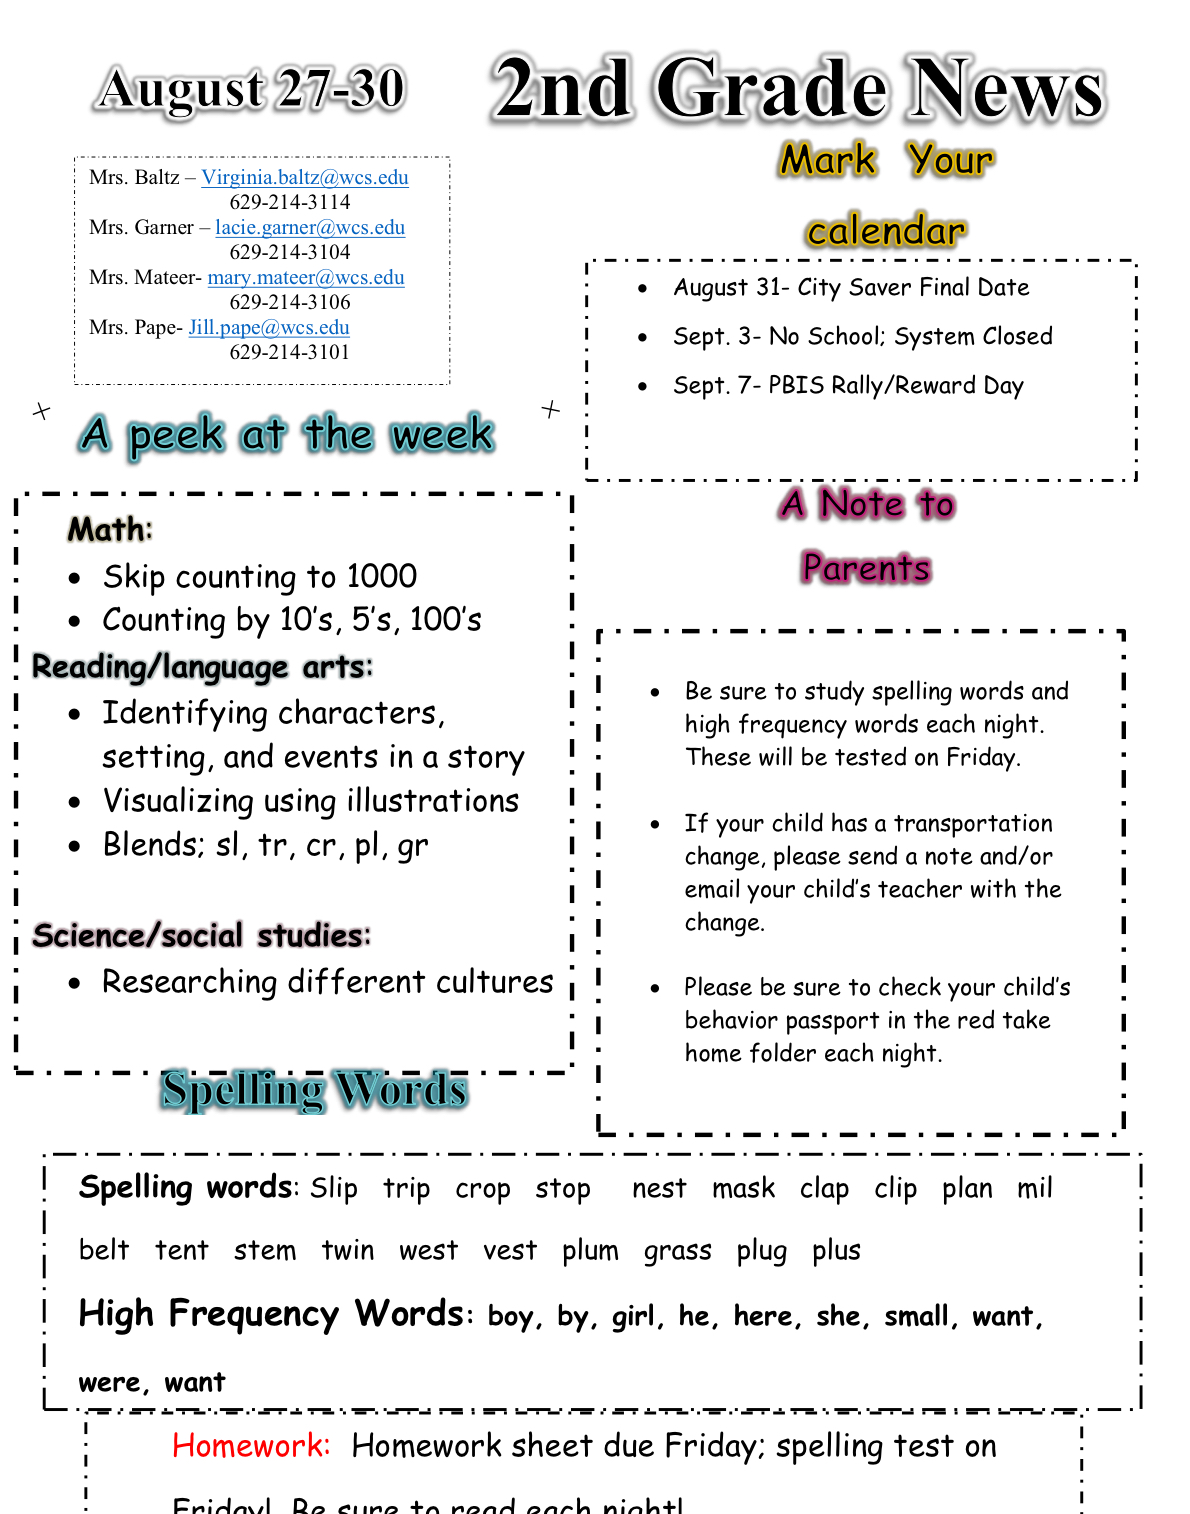 Second Grade Newsletter August 28 please contact office for paper copy